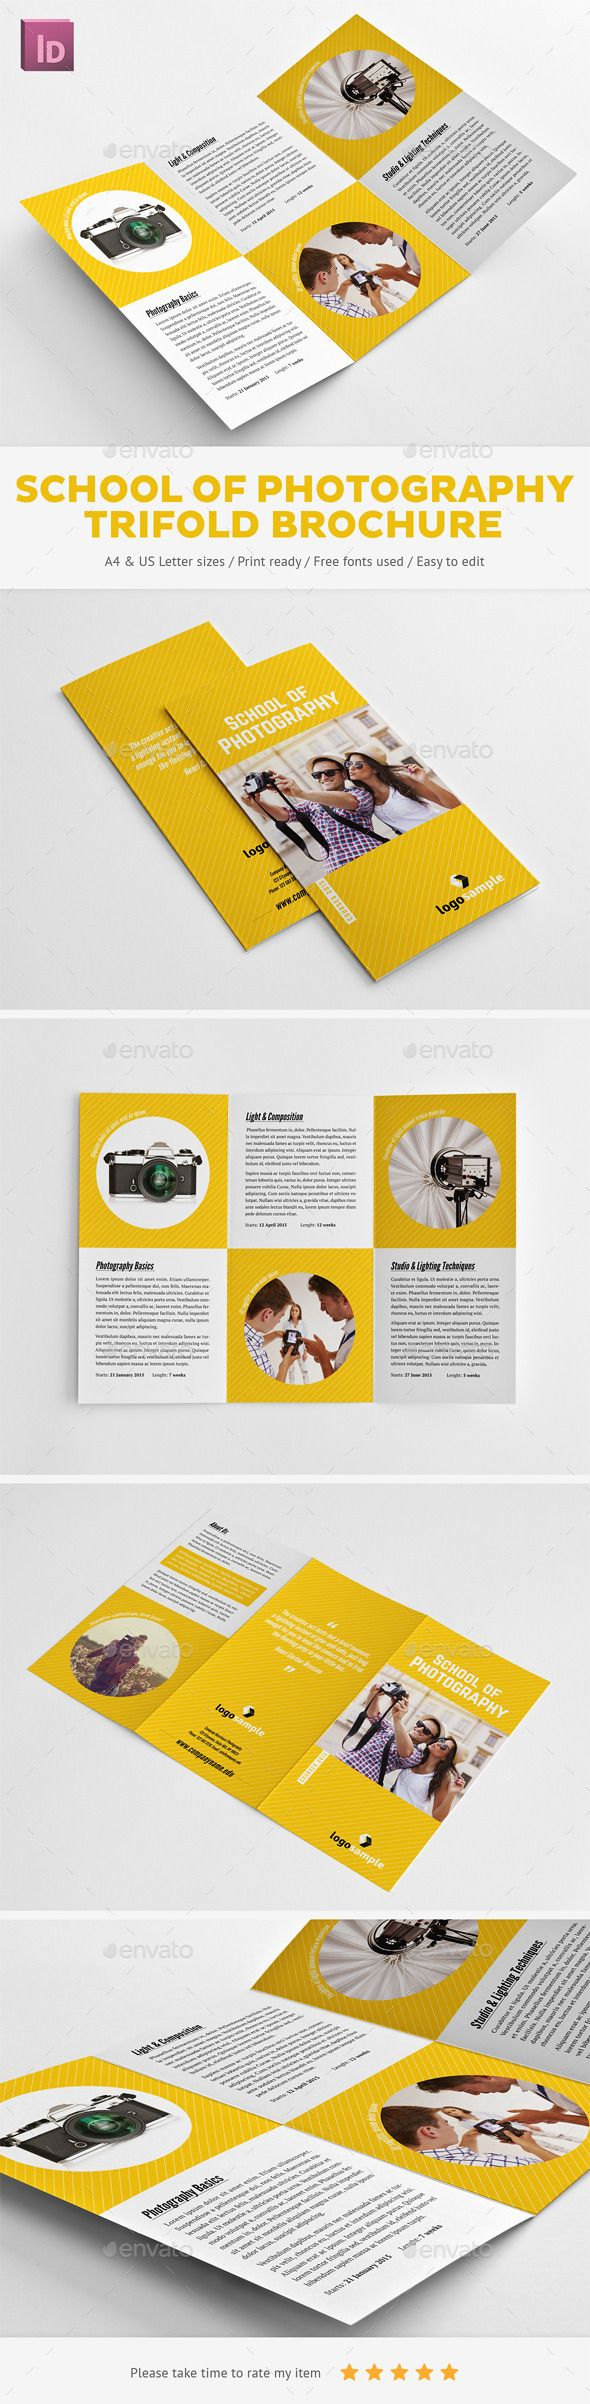 School of Photography Trifold Brochure - Informational Brochures  http://graphicriver.net/item/school-of-photography-trifold-brochure/9962466?WT.ac=portfolio&WT.z_author=Snowboy